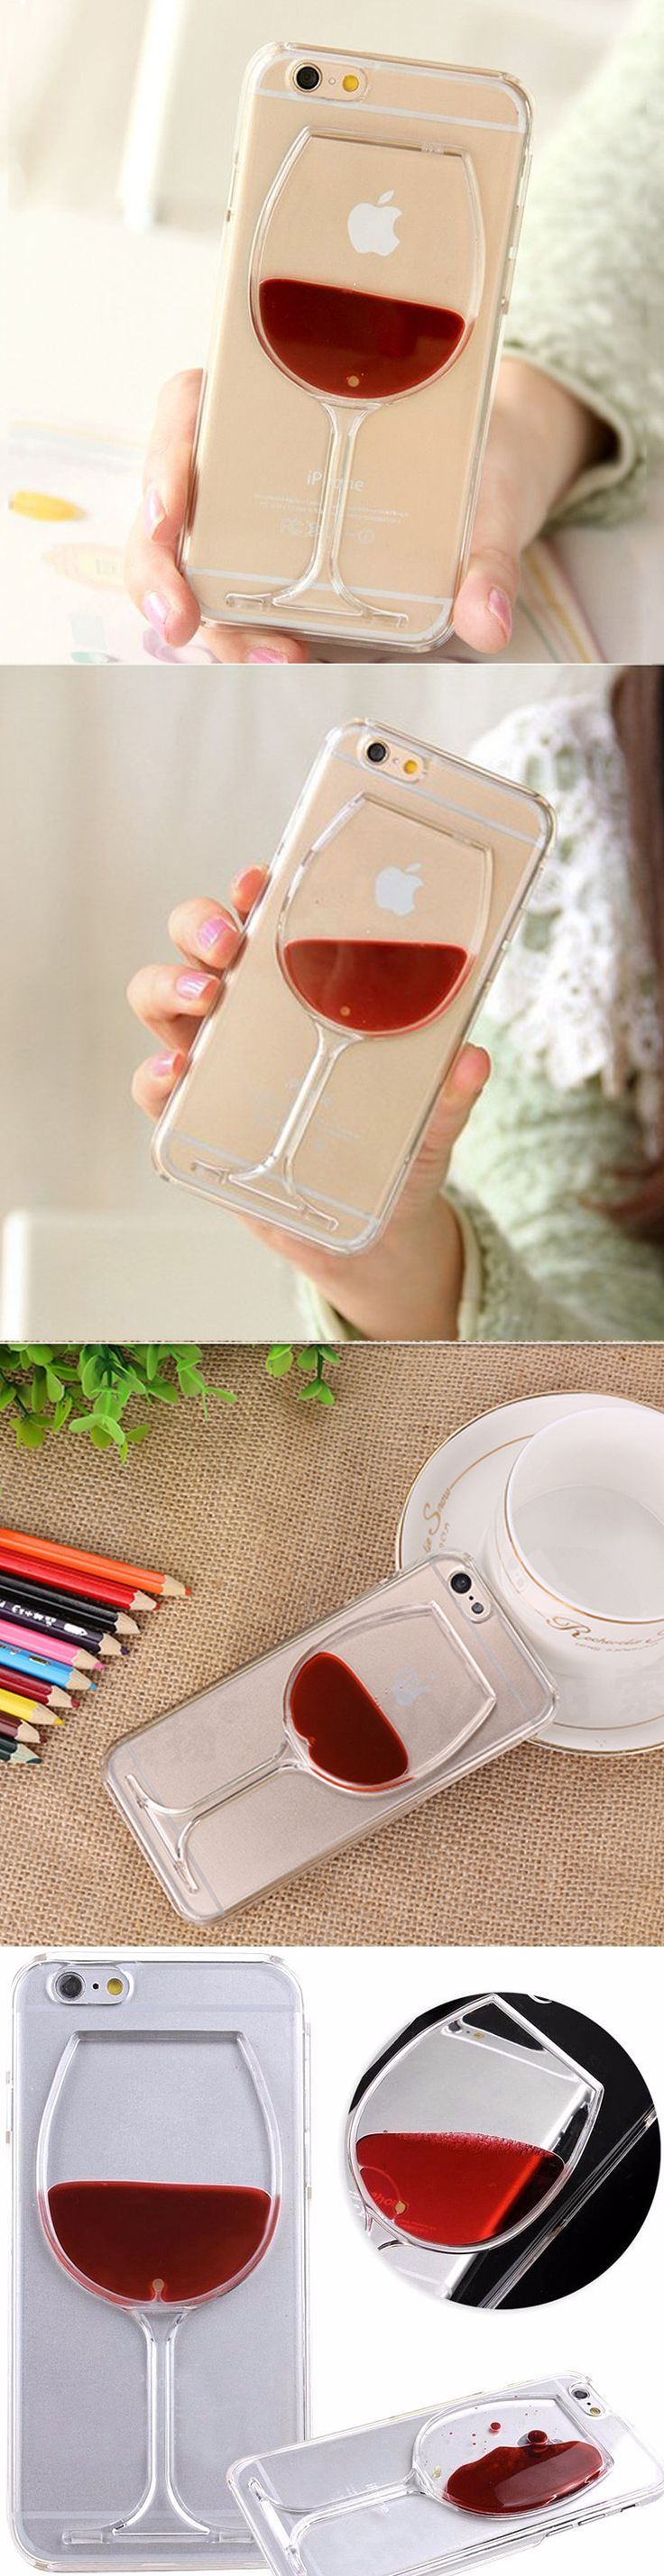 make your iphone unique & stylish using this beautiful glass of wine case